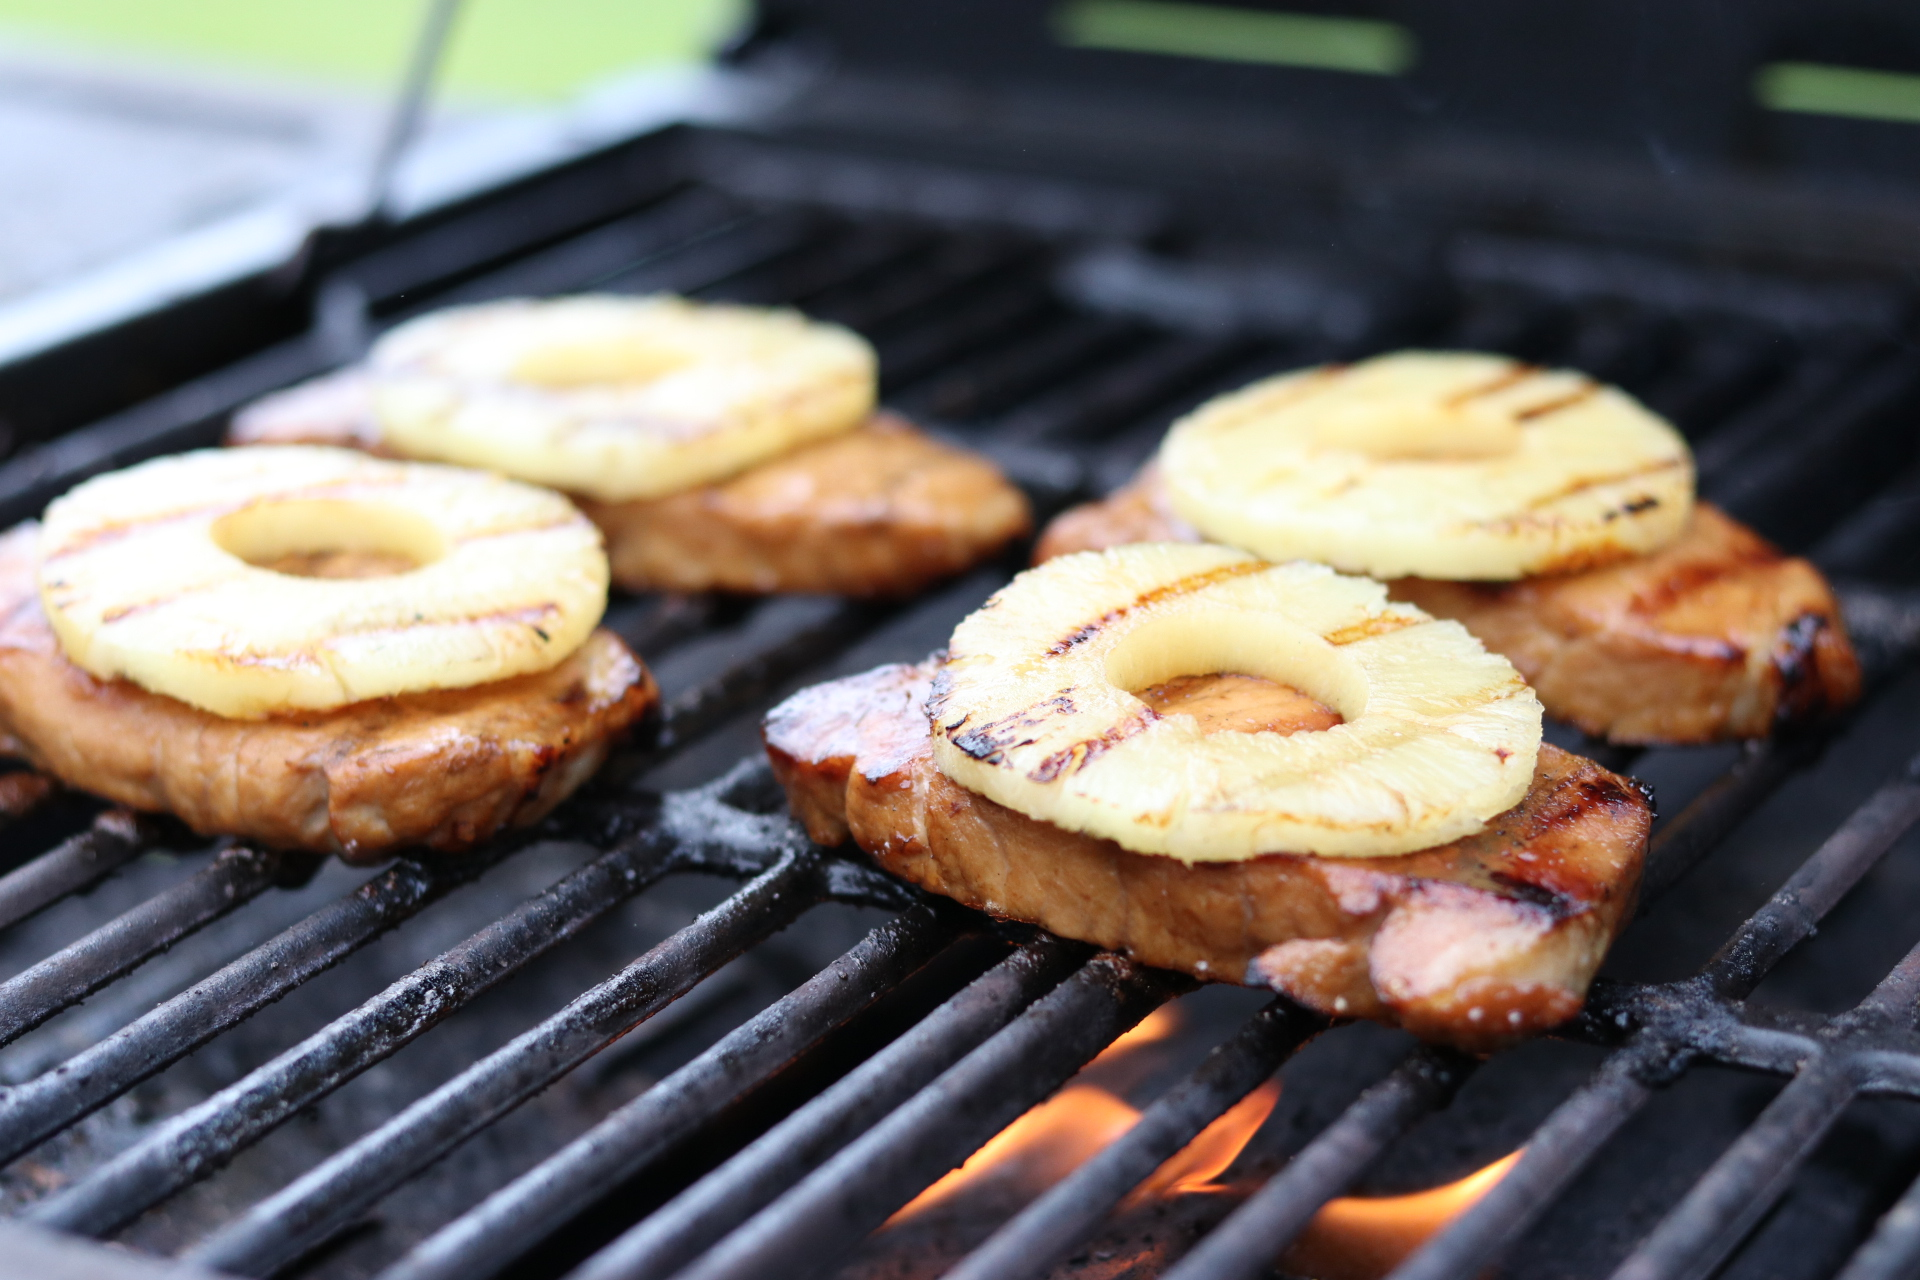 pork chops with pineapple rings on the grill